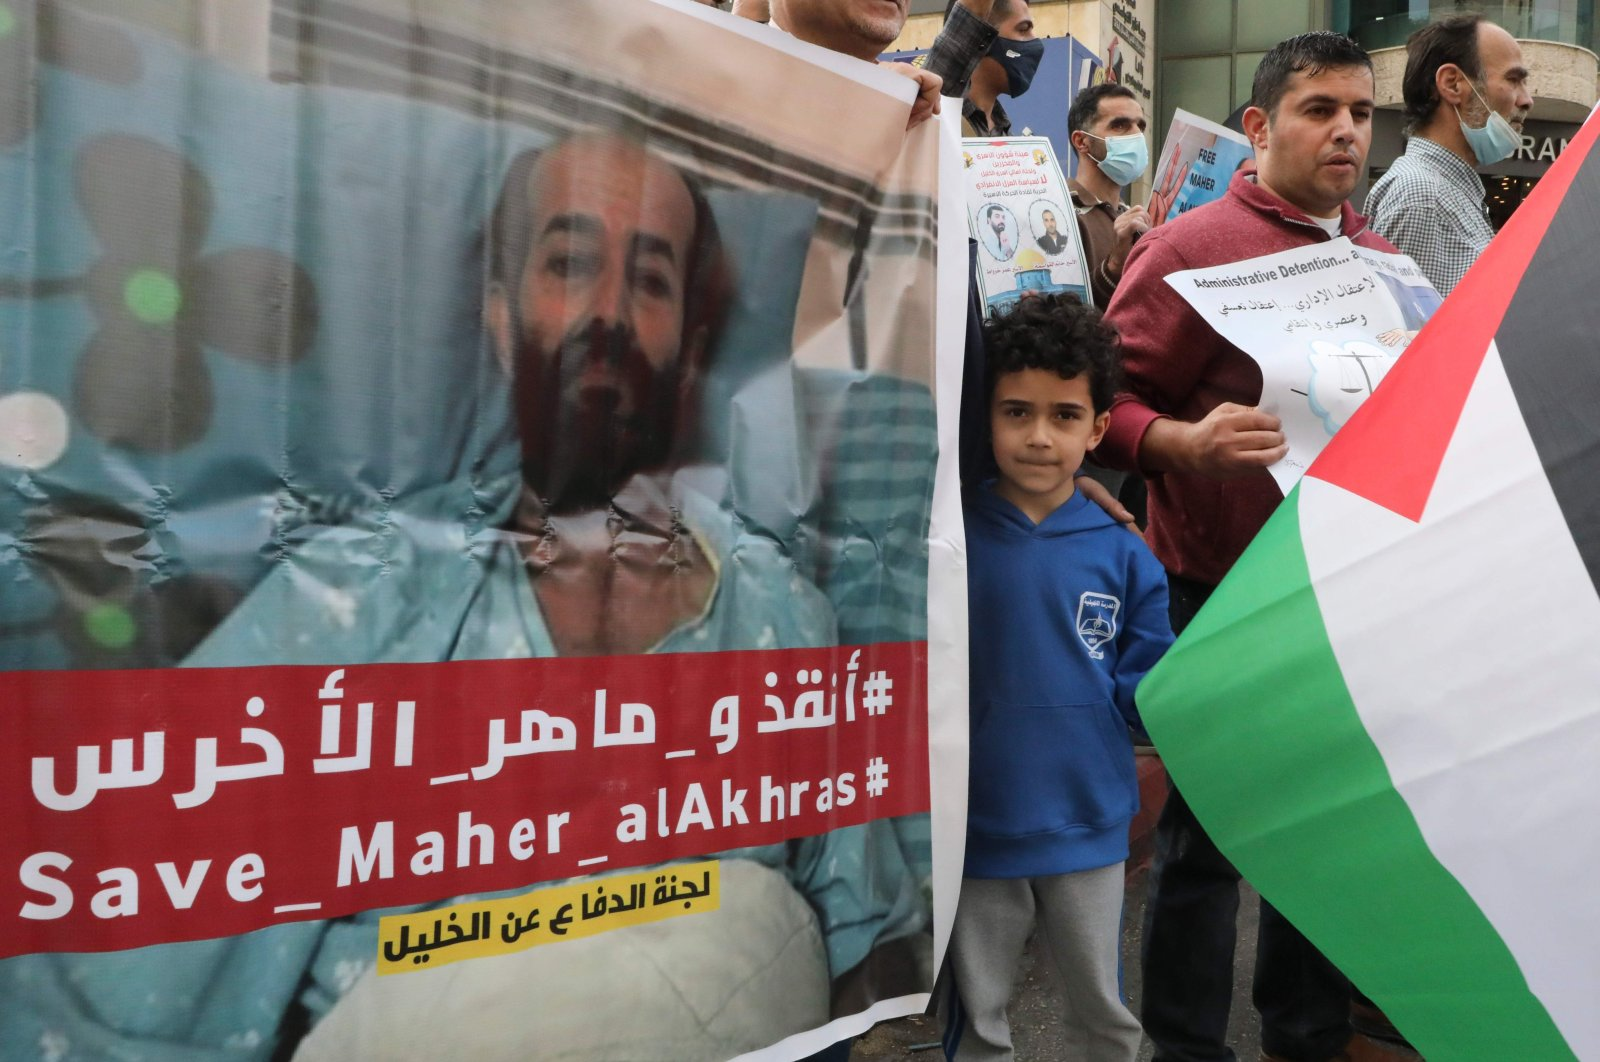 Palestinians carry placards demanding the release of administrative detainee, Maher al-Akhras, from Israeli custody during a demonstration after his health has deteriorated while on hunger strike for nearly 100 days, Hebron, Palestine, Nov. 3, 2020. (AFP Photo)